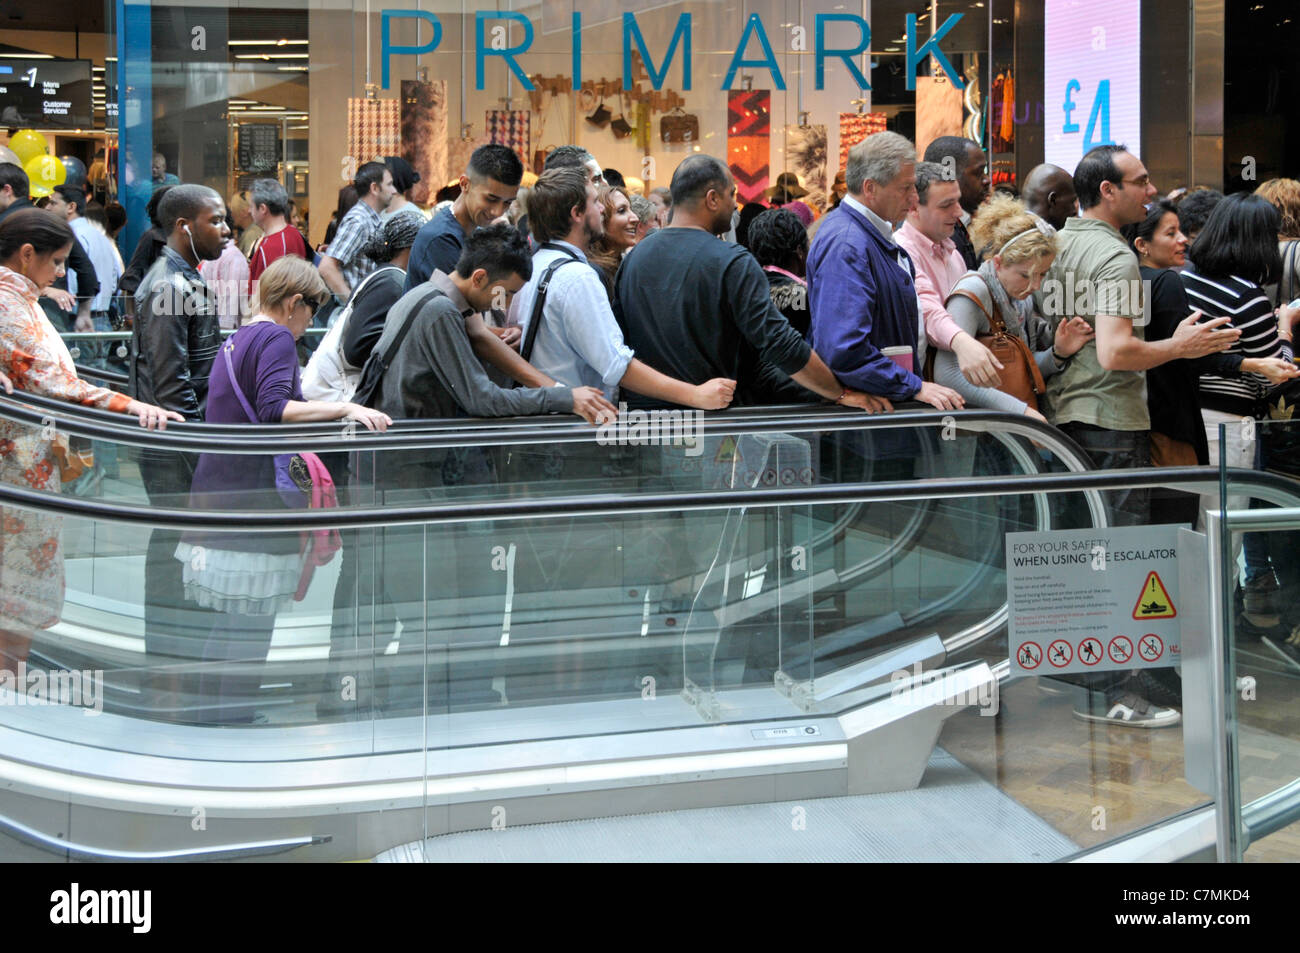 Group of people shoppers on busy indoor down escalator Westfield shopping centre mall outside Primark clothing store - Stock Image